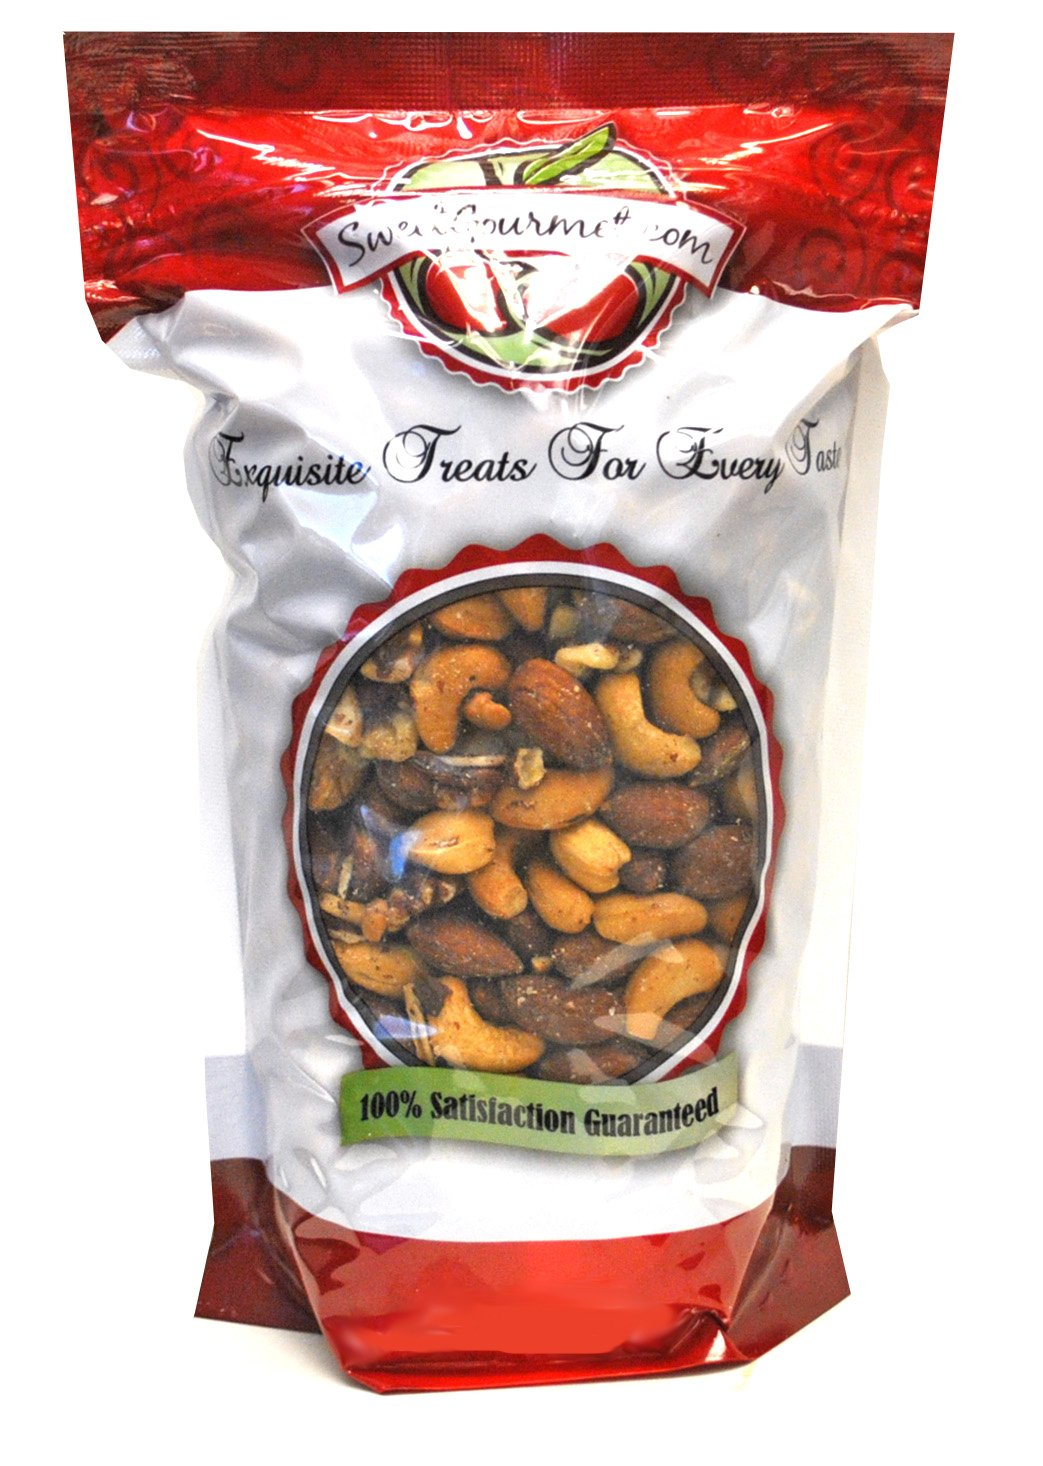 Premium Mixed Roasted Nuts-Unsalted, 2 lb by Green Bulk